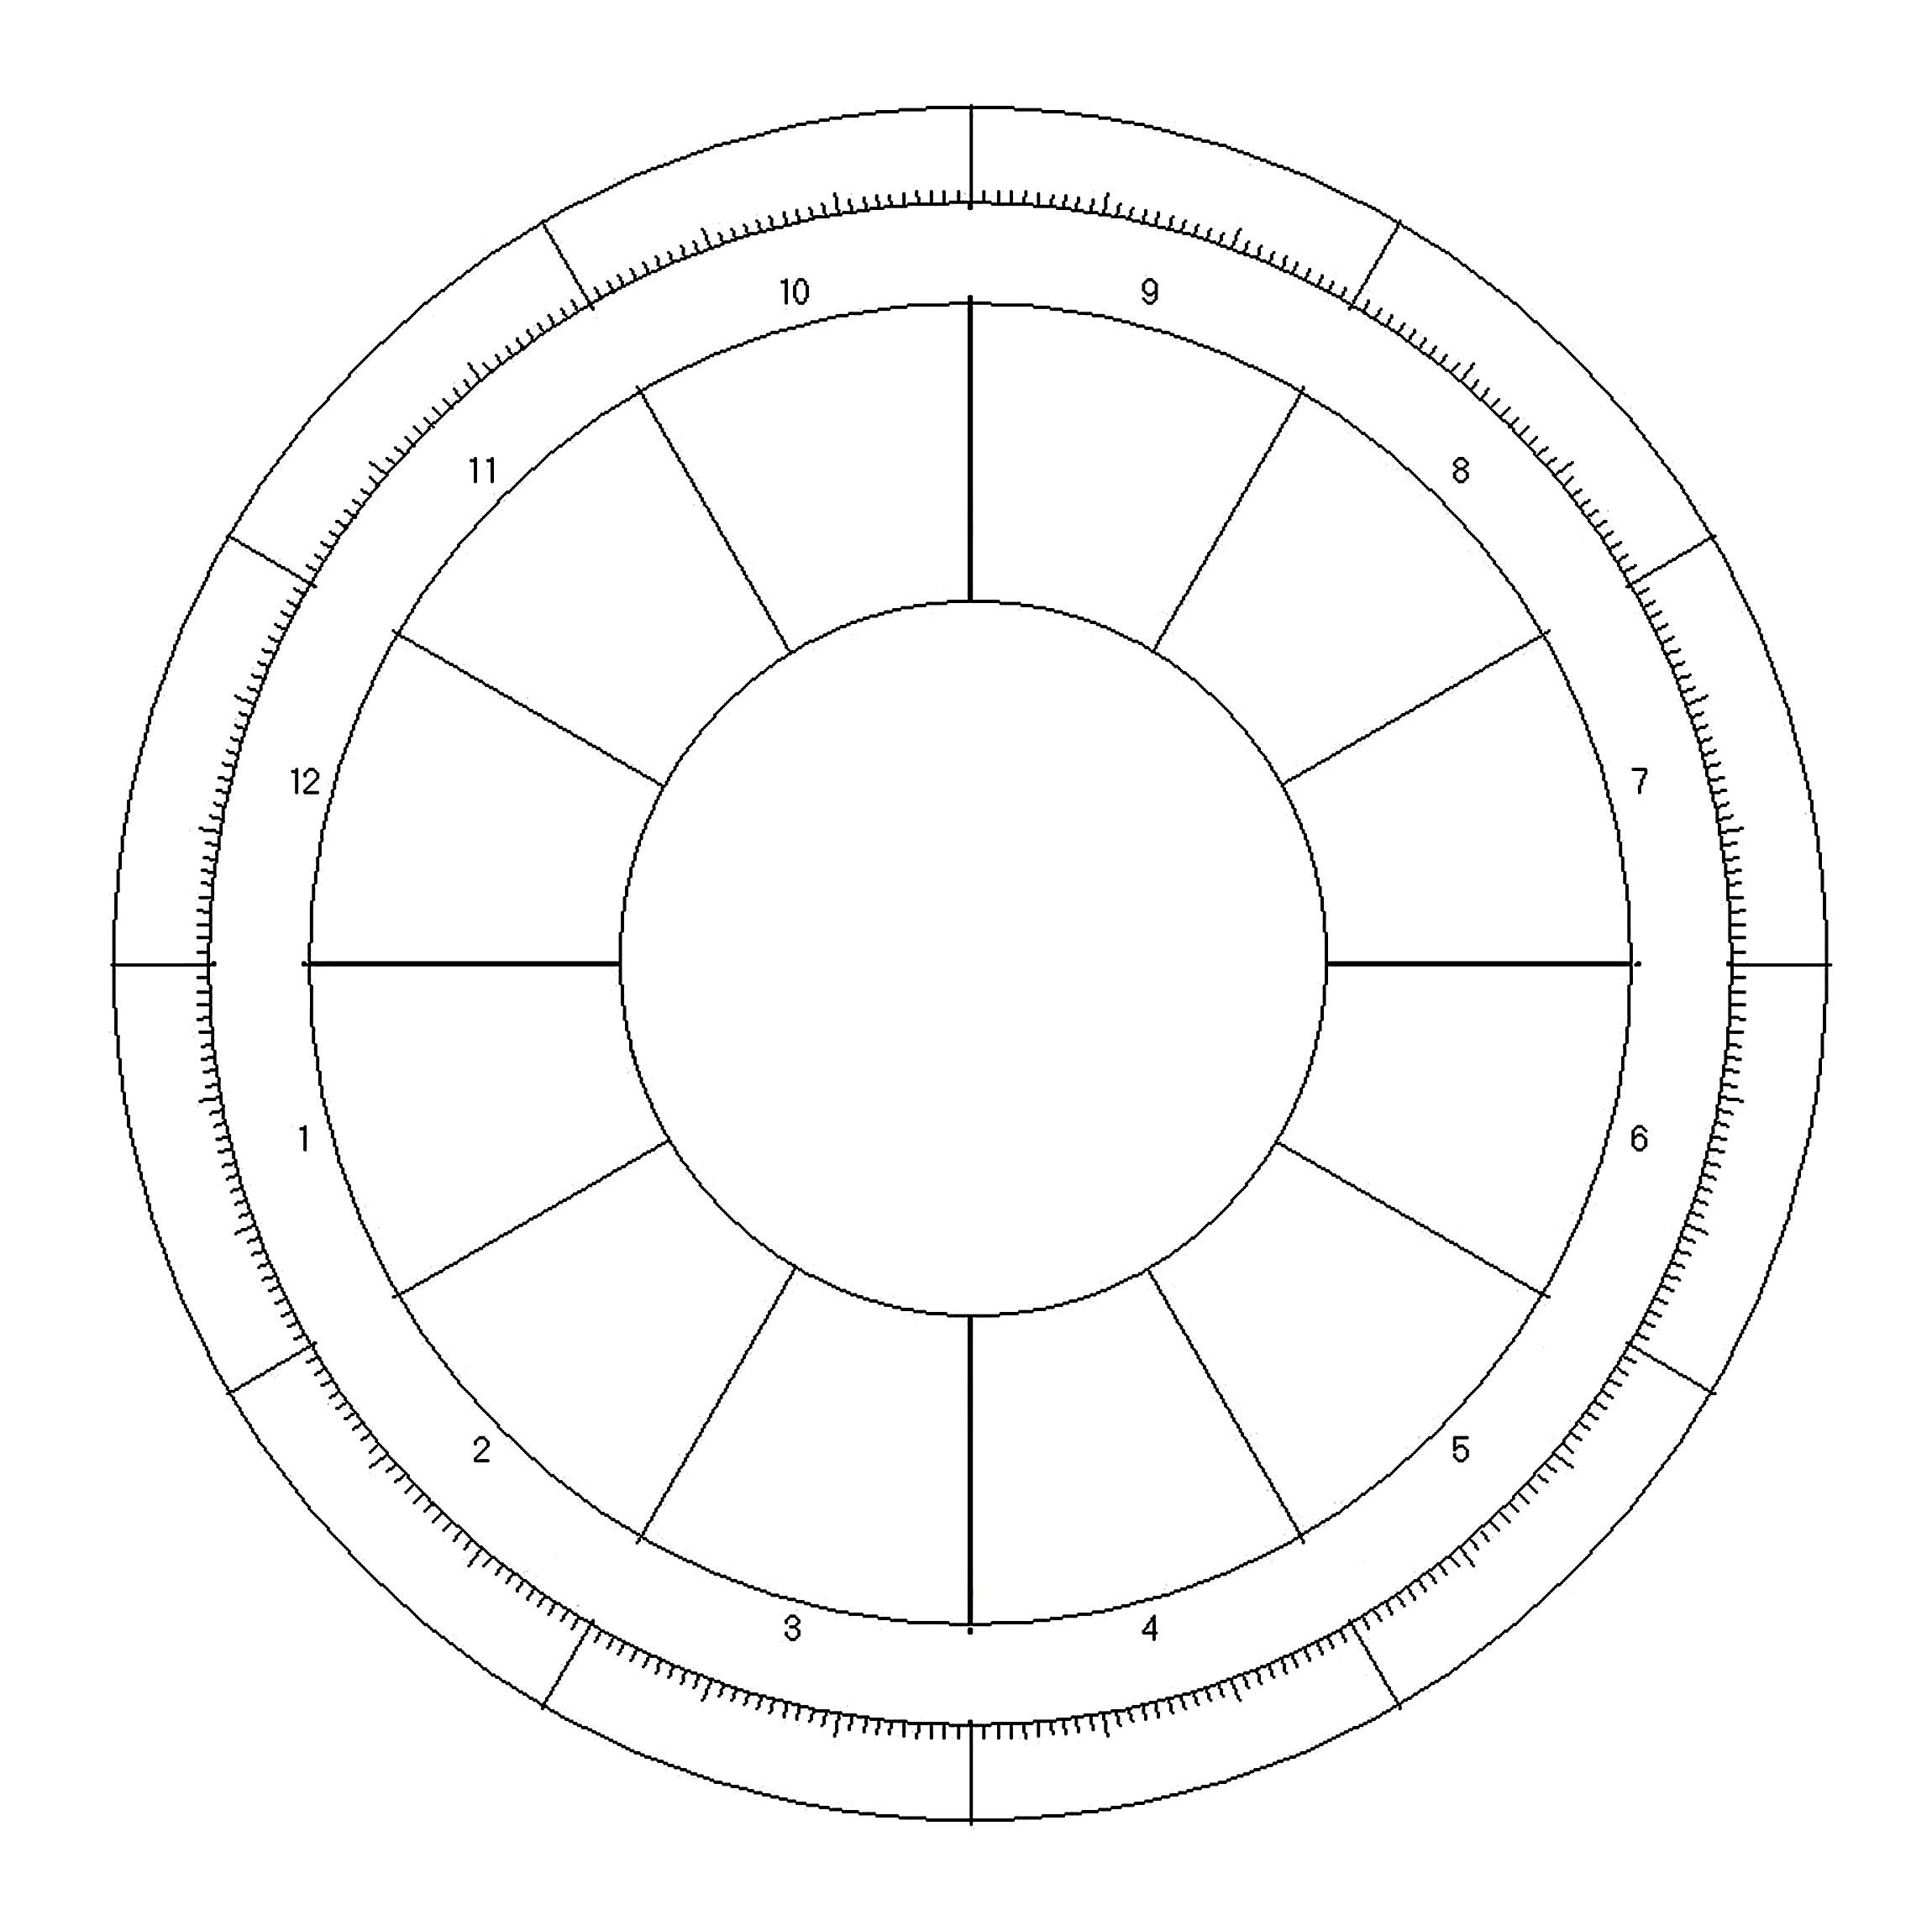 Image Result For Astrological Wheel Template